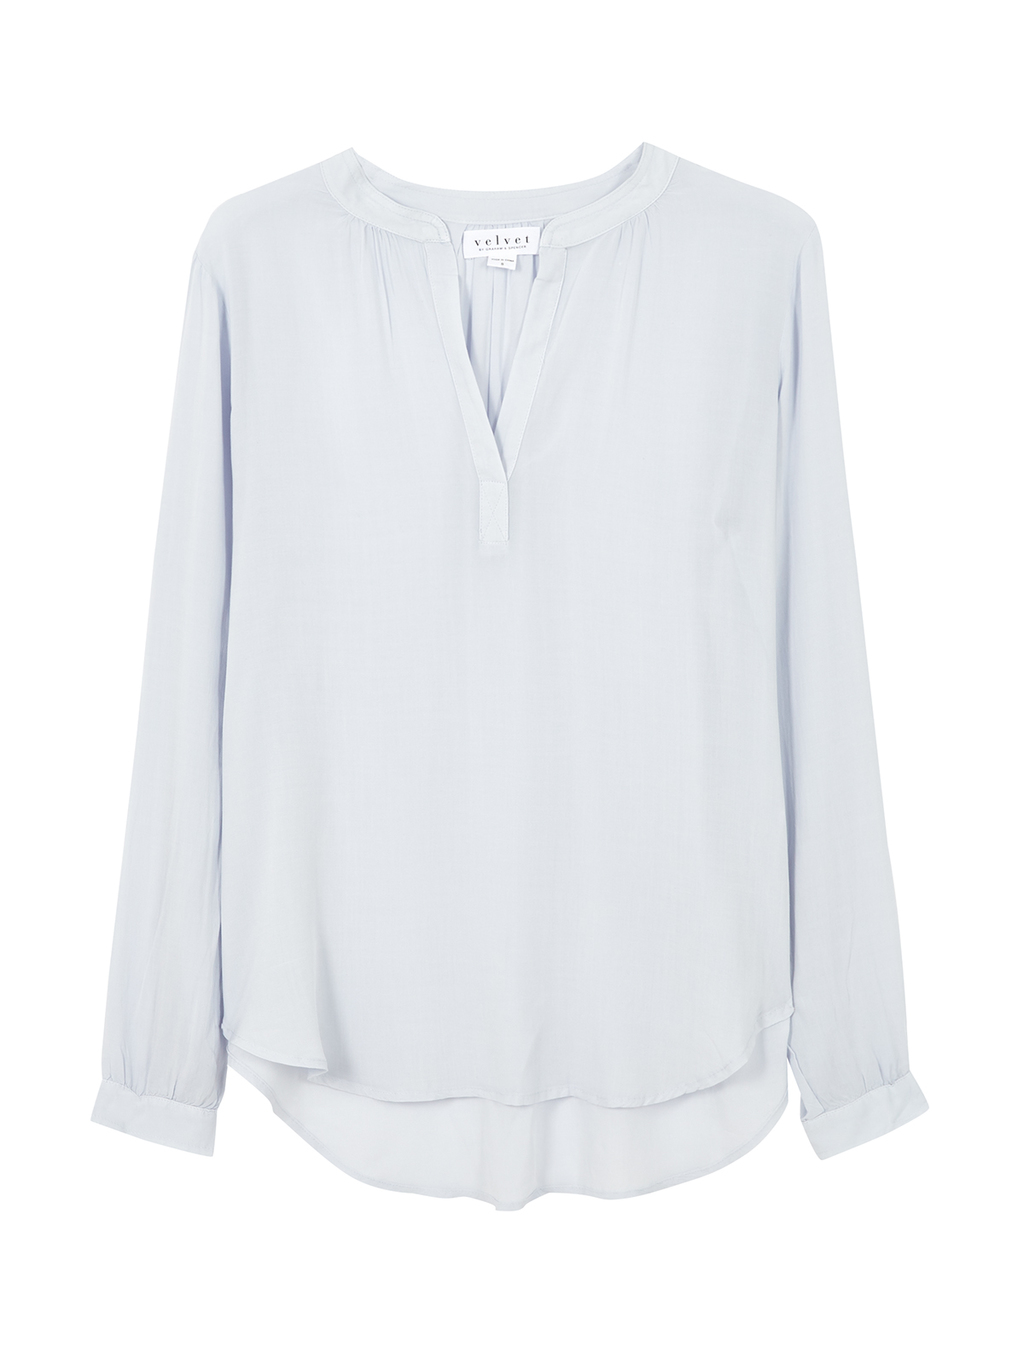 Rosie Long Sleeve Blouse - neckline: v-neck; pattern: plain; style: blouse; predominant colour: white; occasions: casual, creative work; length: standard; fibres: viscose/rayon - 100%; fit: body skimming; sleeve length: long sleeve; sleeve style: standard; texture group: sheer fabrics/chiffon/organza etc.; pattern type: fabric; season: s/s 2016; wardrobe: basic